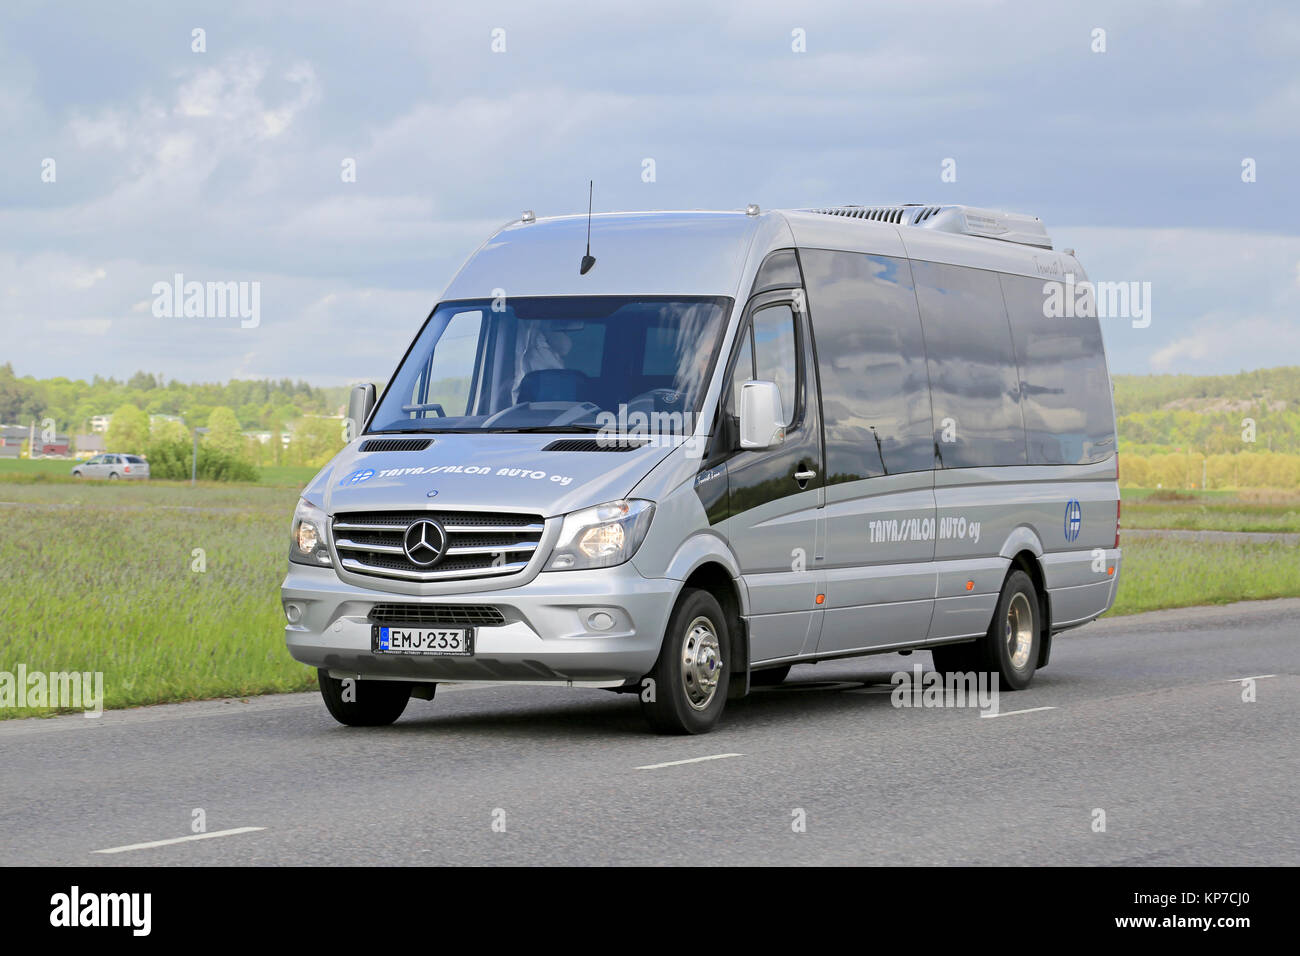 SALO, FINLAND - JUNE 7, 2015: Mercedes-Benz Sprinter minibus transports passengers. The MB Sprinter has a seating - Stock Image